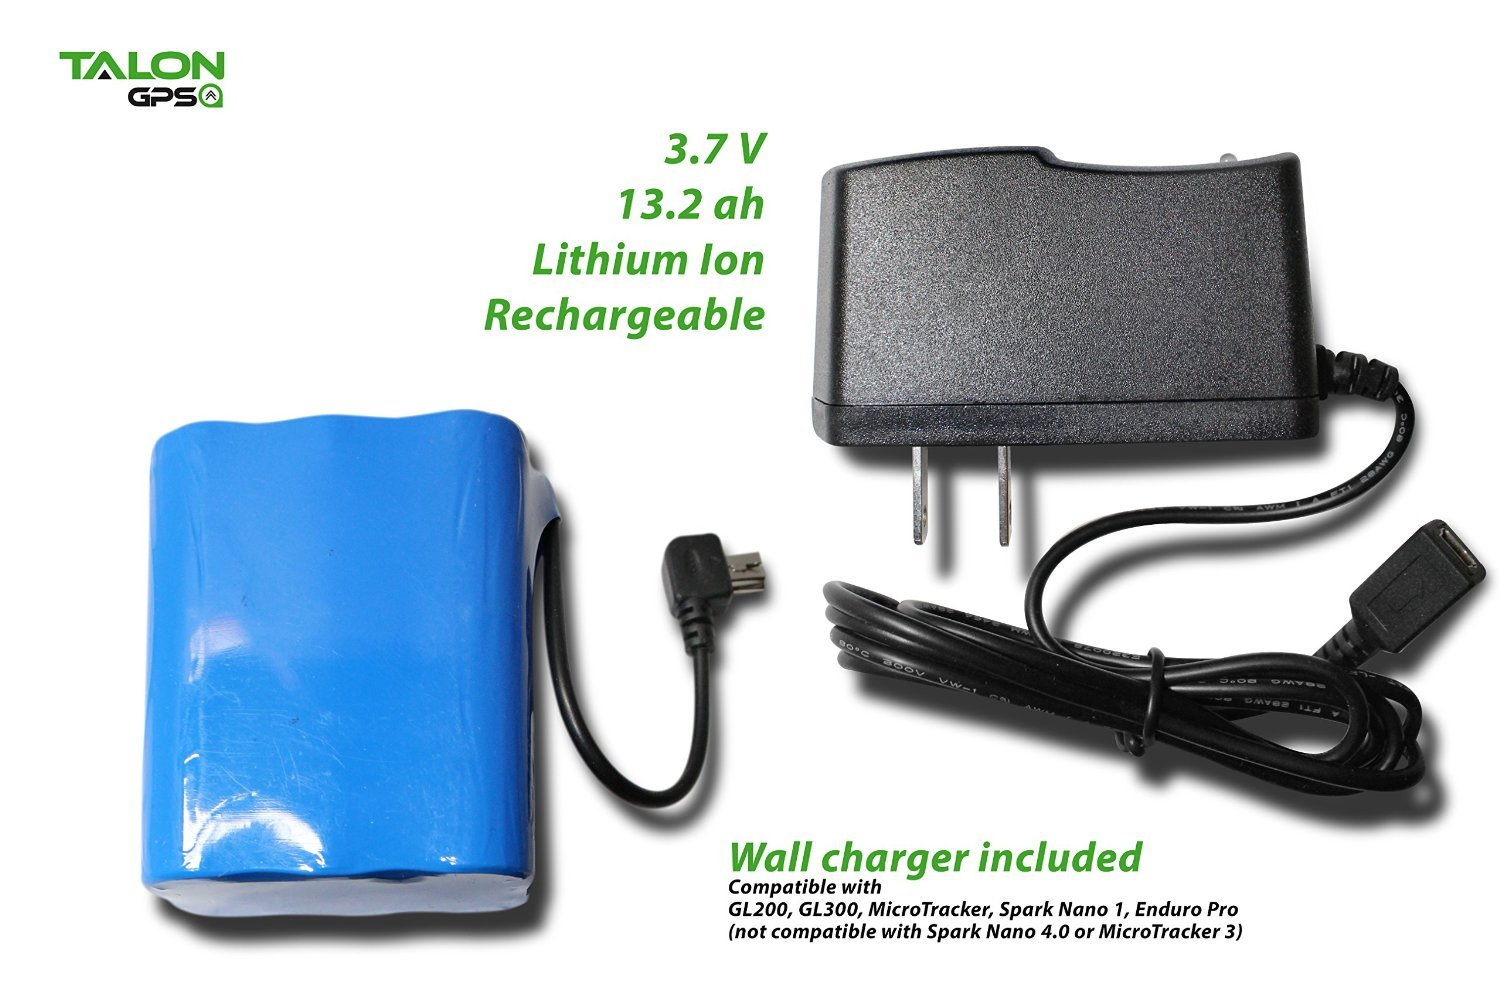 Talon Gps Tracking Device Free Download Wiring Diagram Amazon Com Battery Pack And Magnetic Vehicle Mount